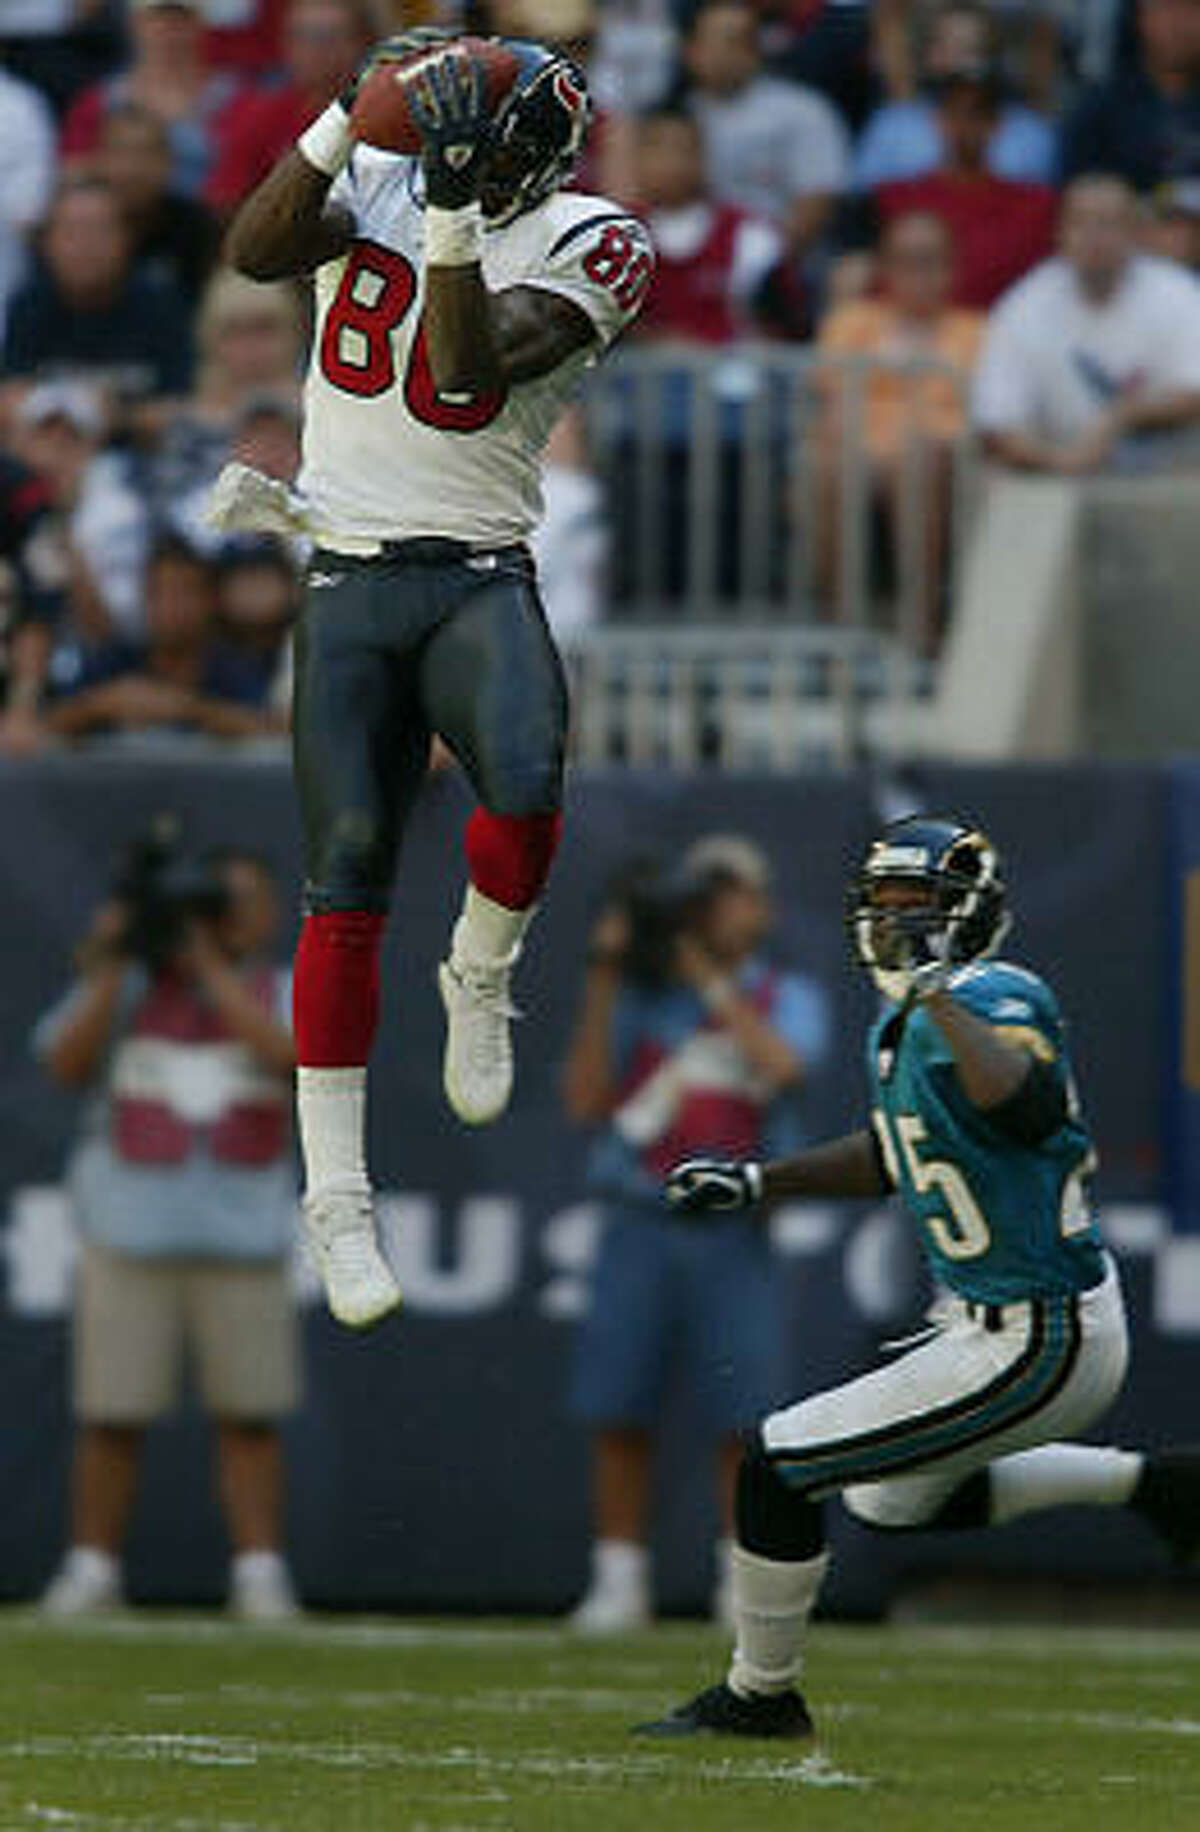 2003, WR Andre Johnson: Started 16 games; led team with 976 yds. receiving and four TDs.